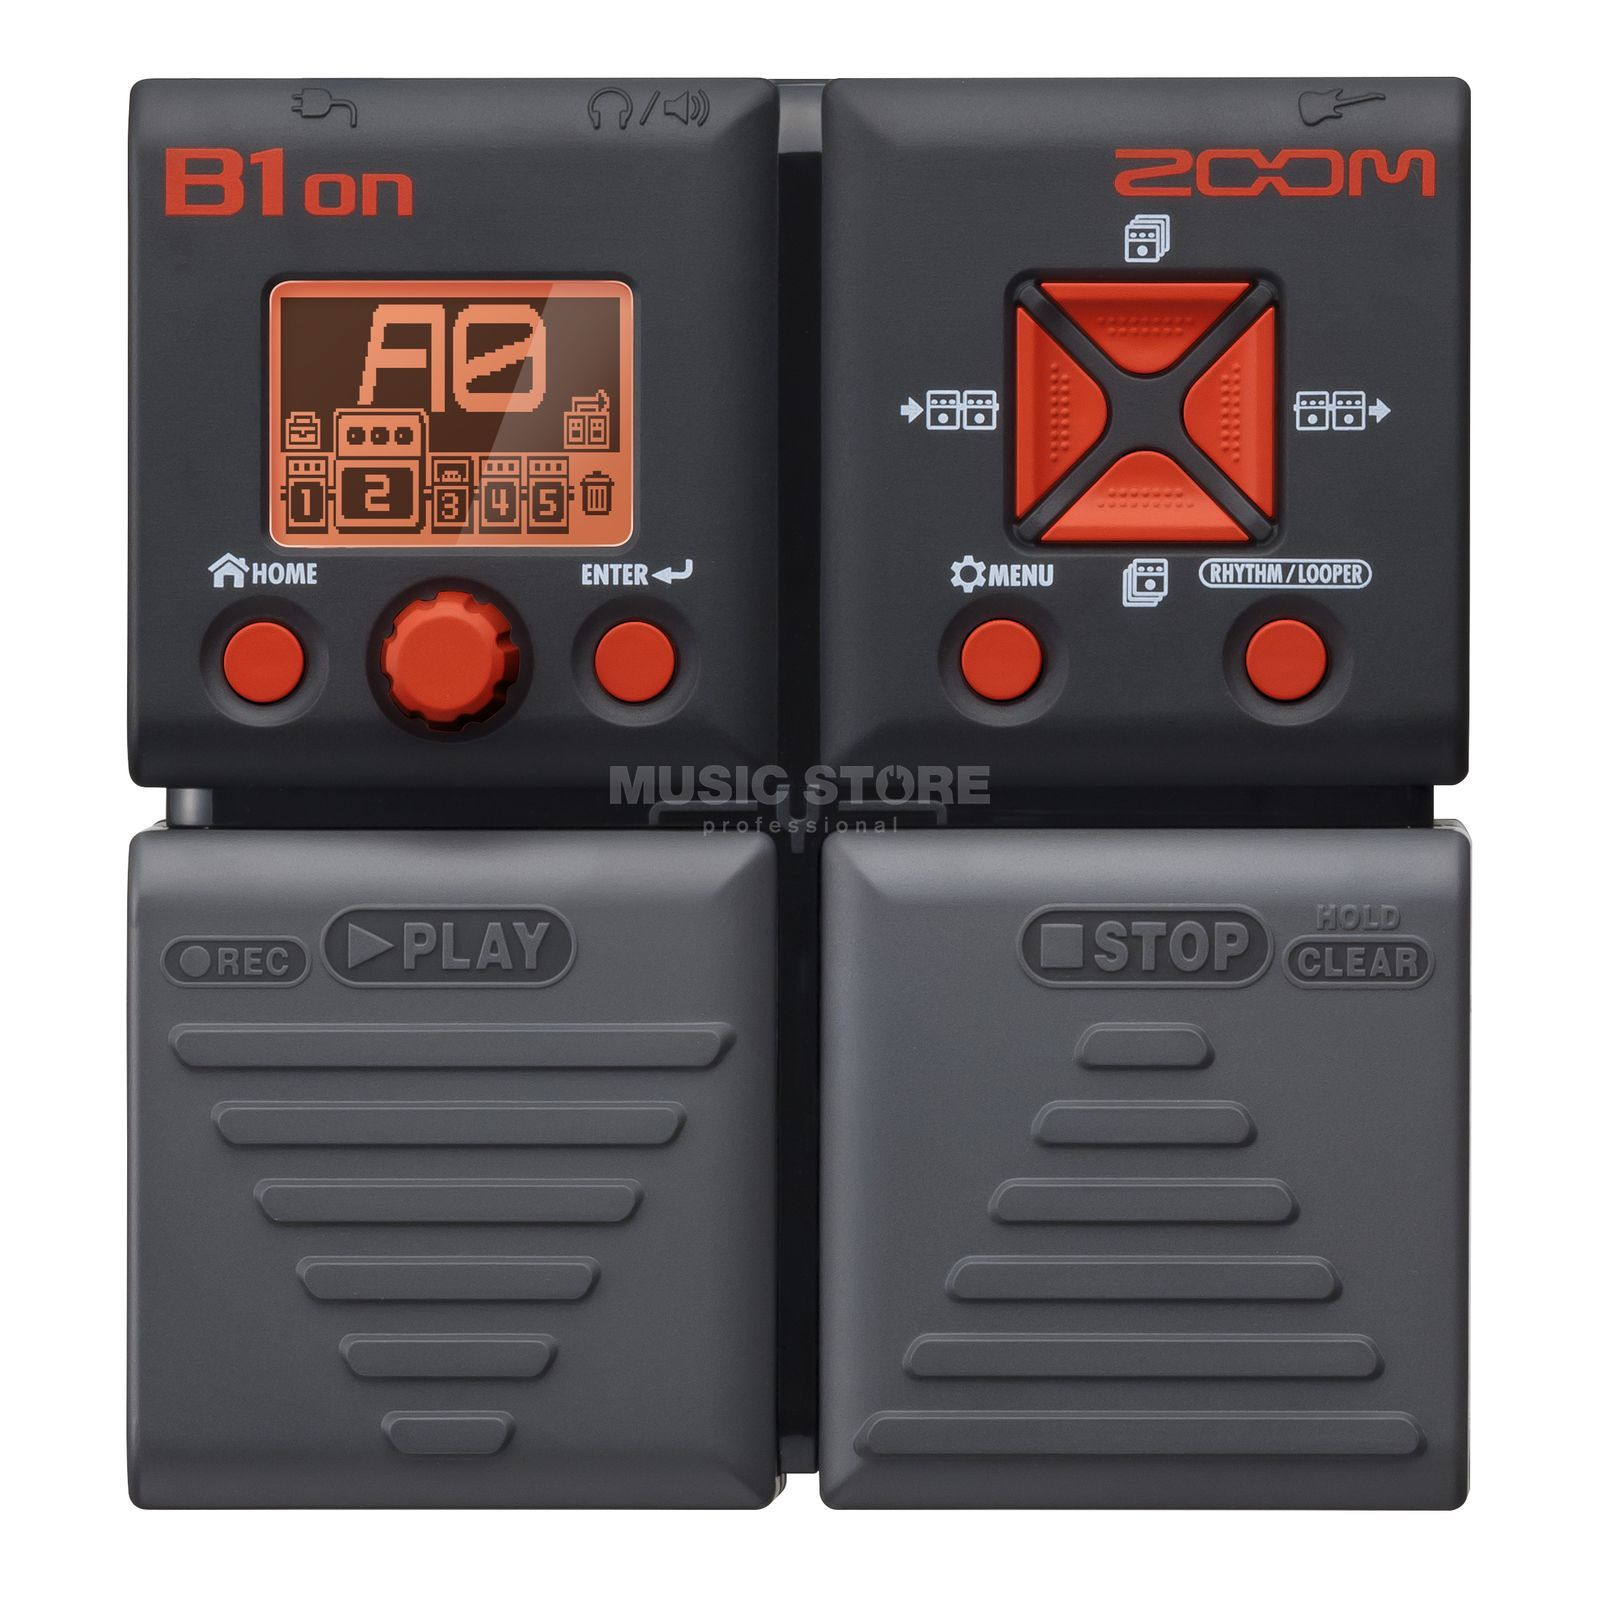 Zoom B1on  Image du produit